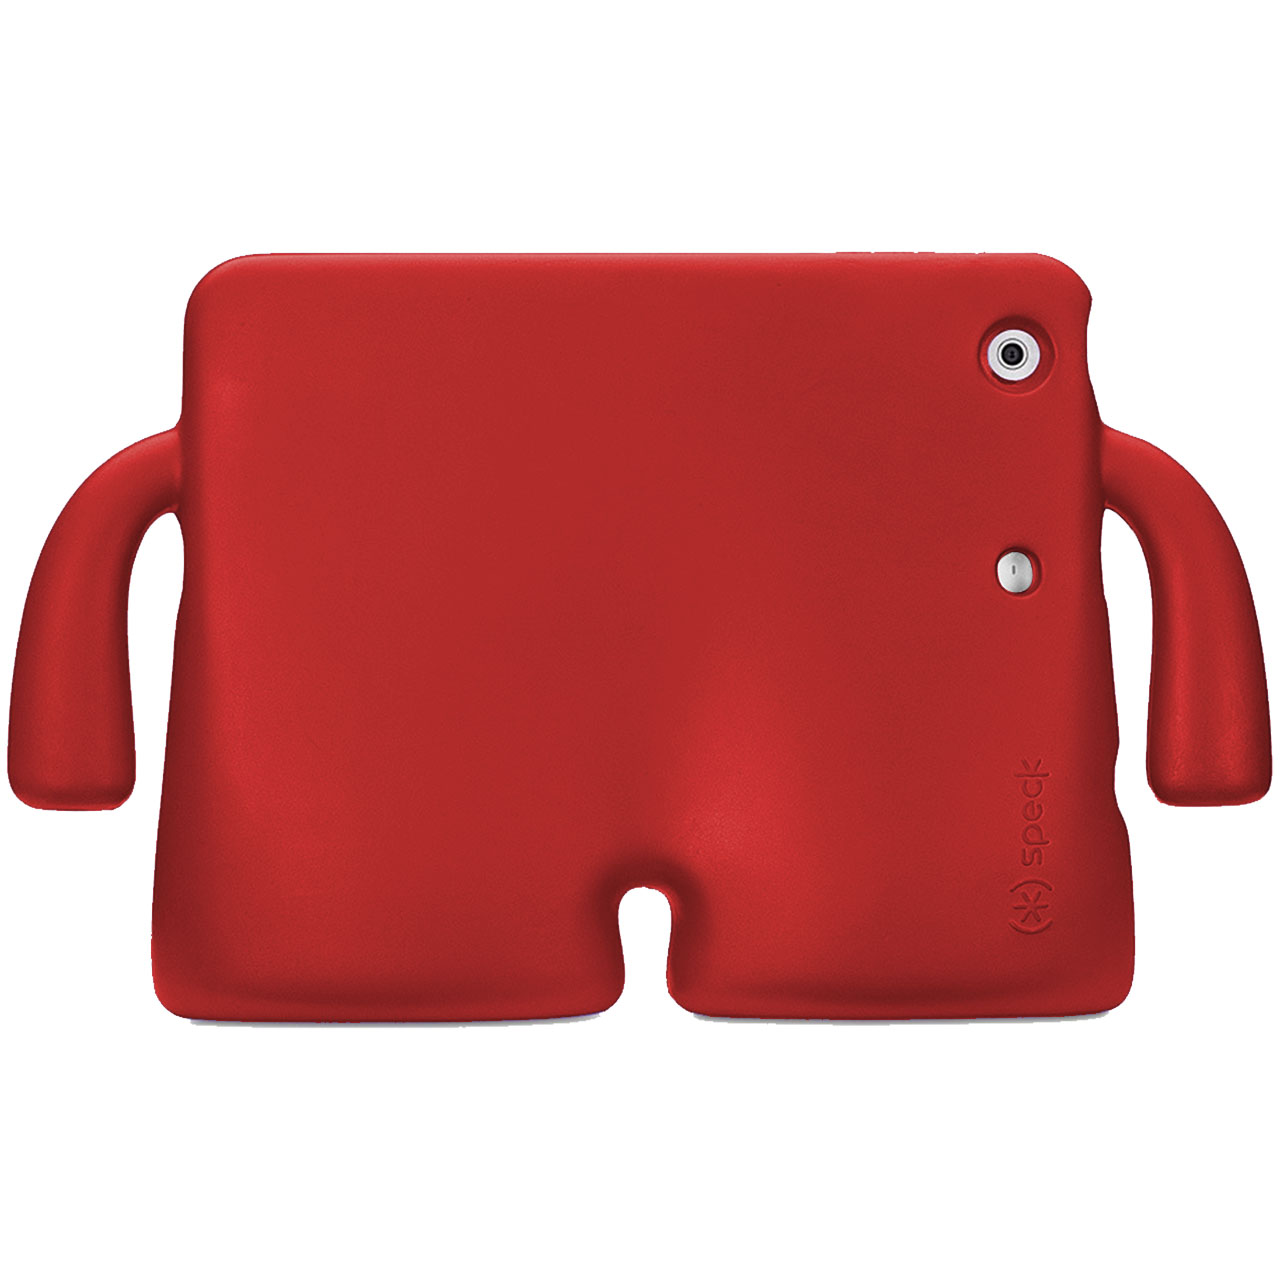 iGuy Kids Protective Case for Apple iPad Air/Air 2/iPad 5/6 (Red) - thumbnail